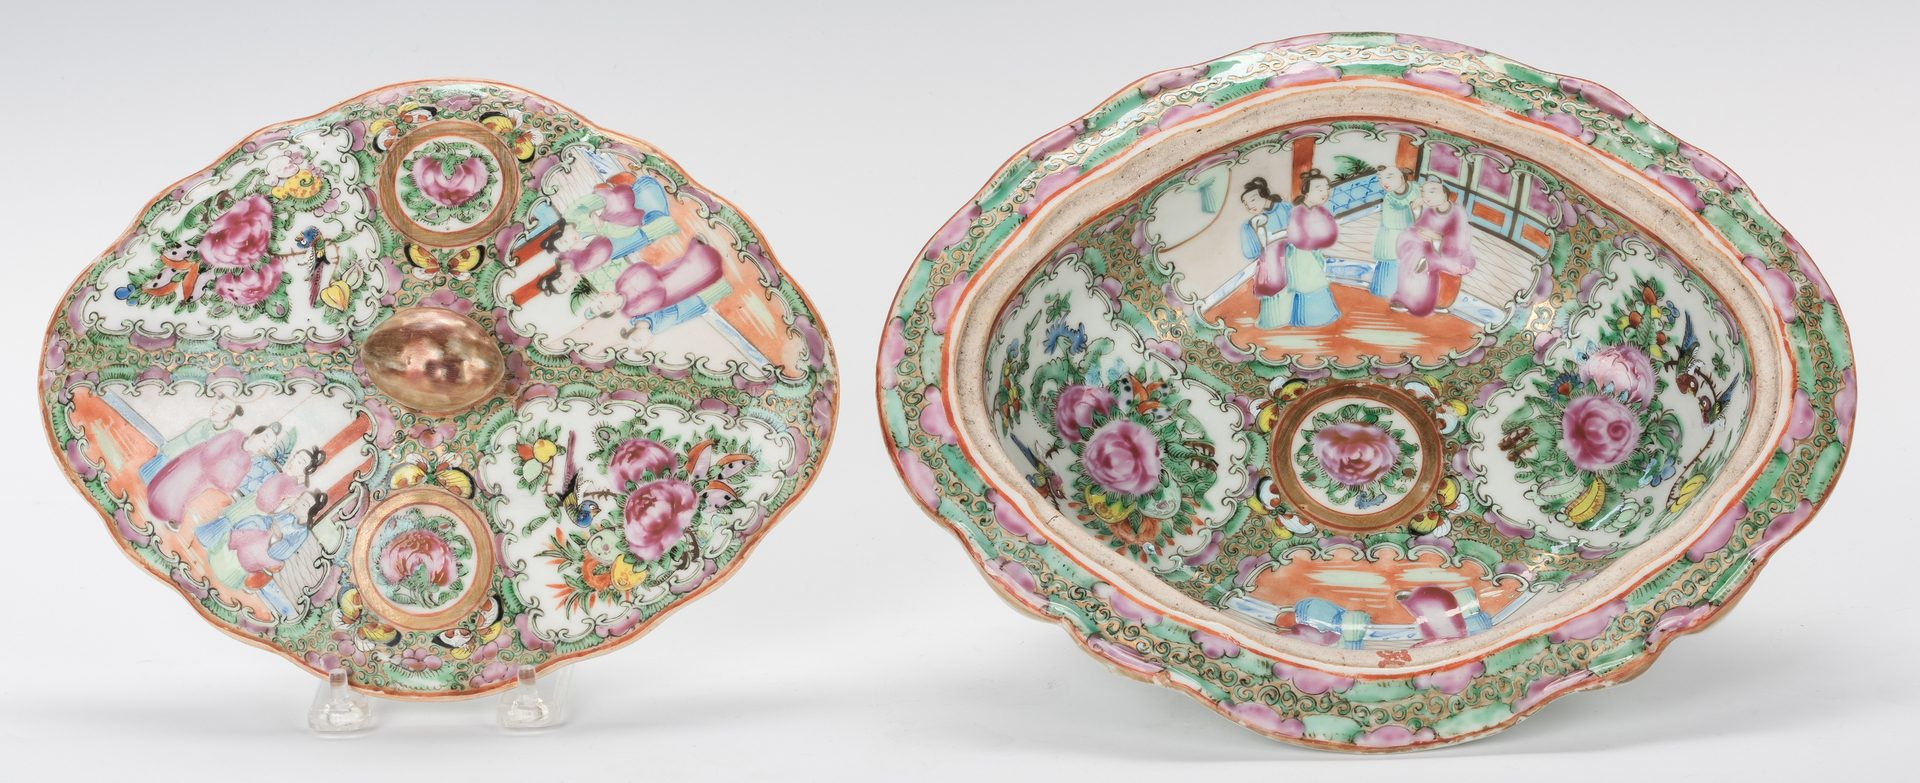 Lot 760: Large Chinese Rose Medallion Platter & Covered Tureen